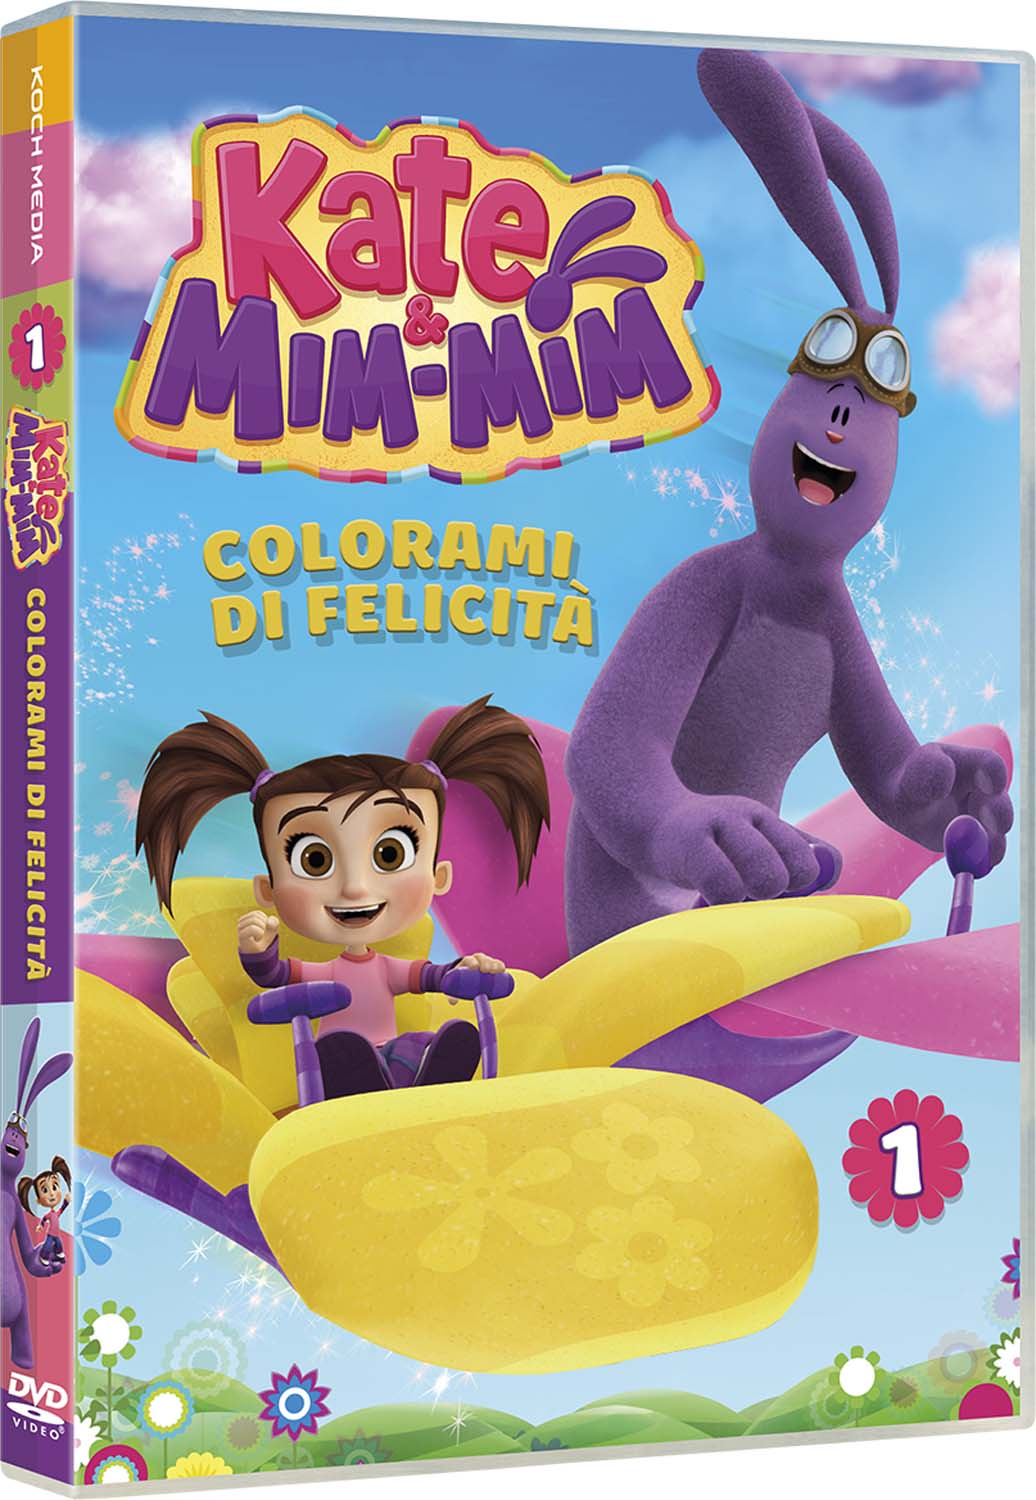 KATE & MIM-MIM #01 - COLORAMI DI FELICITA' (DVD)